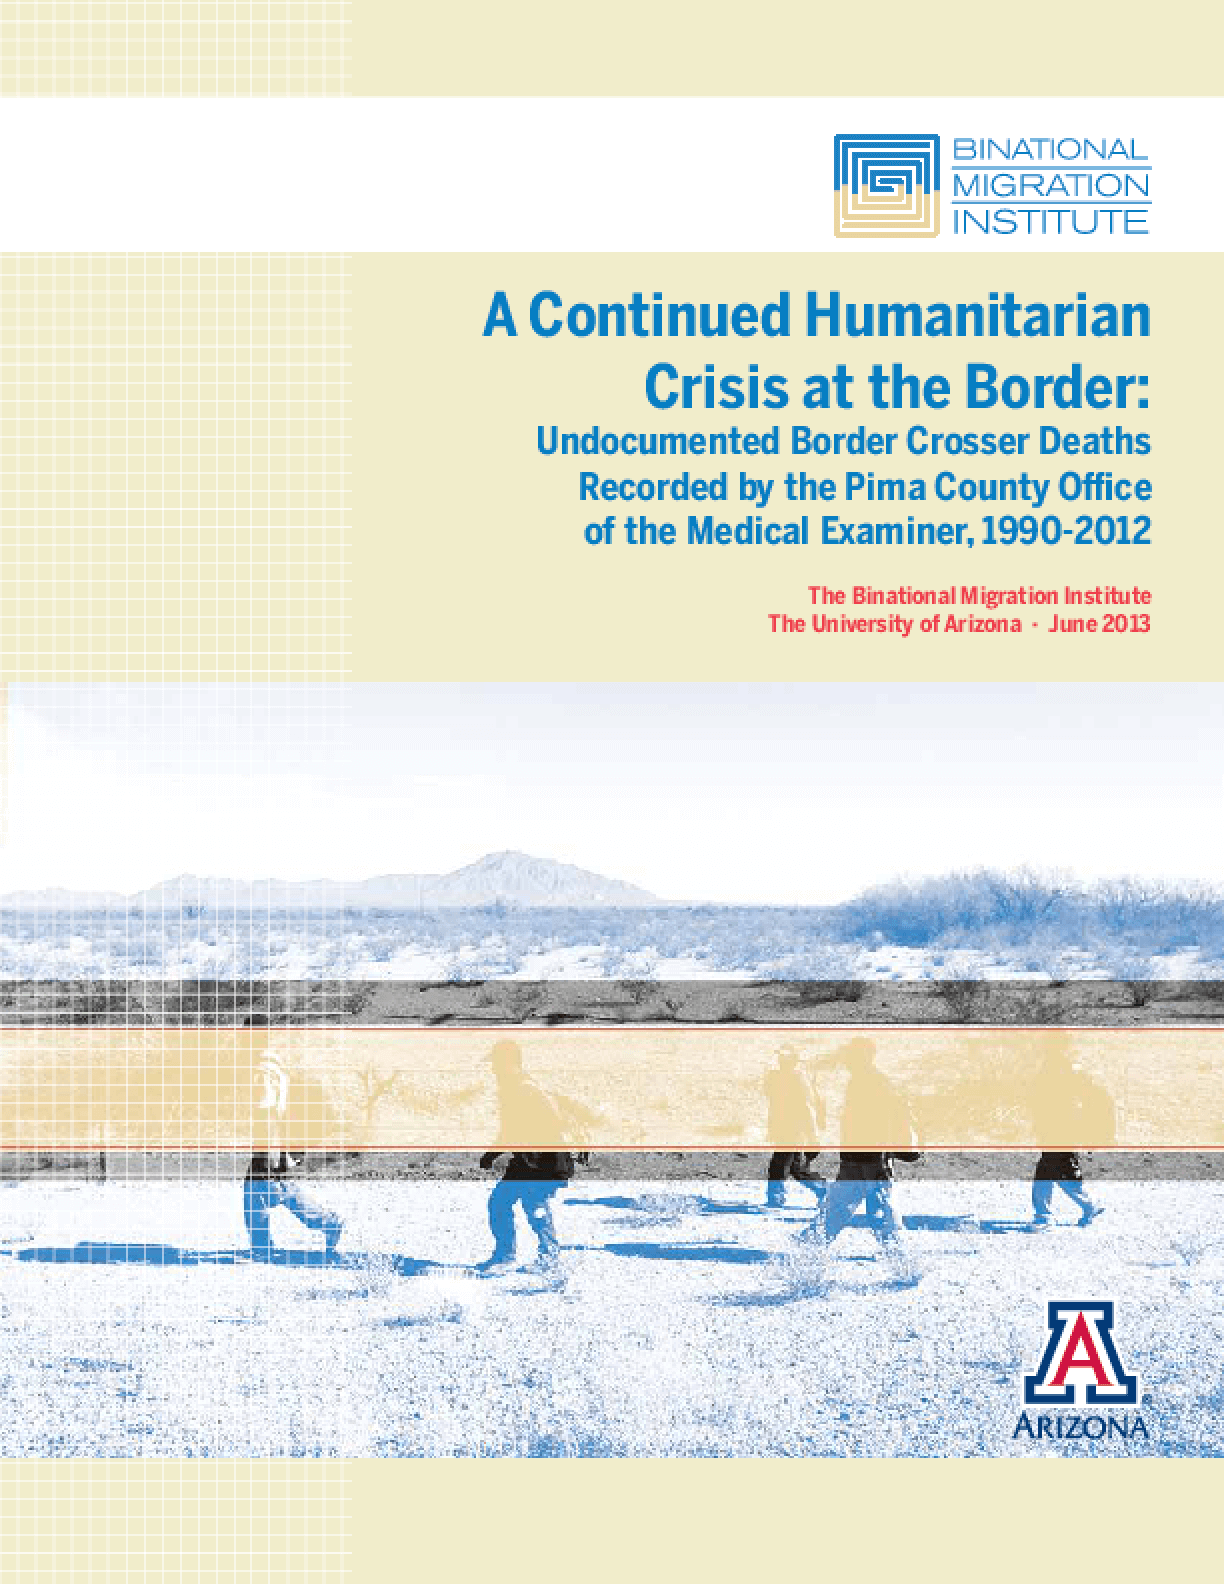 A Continued Humanitarian Crisis at the Border: Undocumented Border Crosser Deaths Recorded by the Pima County Office of the Medical Examiner, 1990-2012